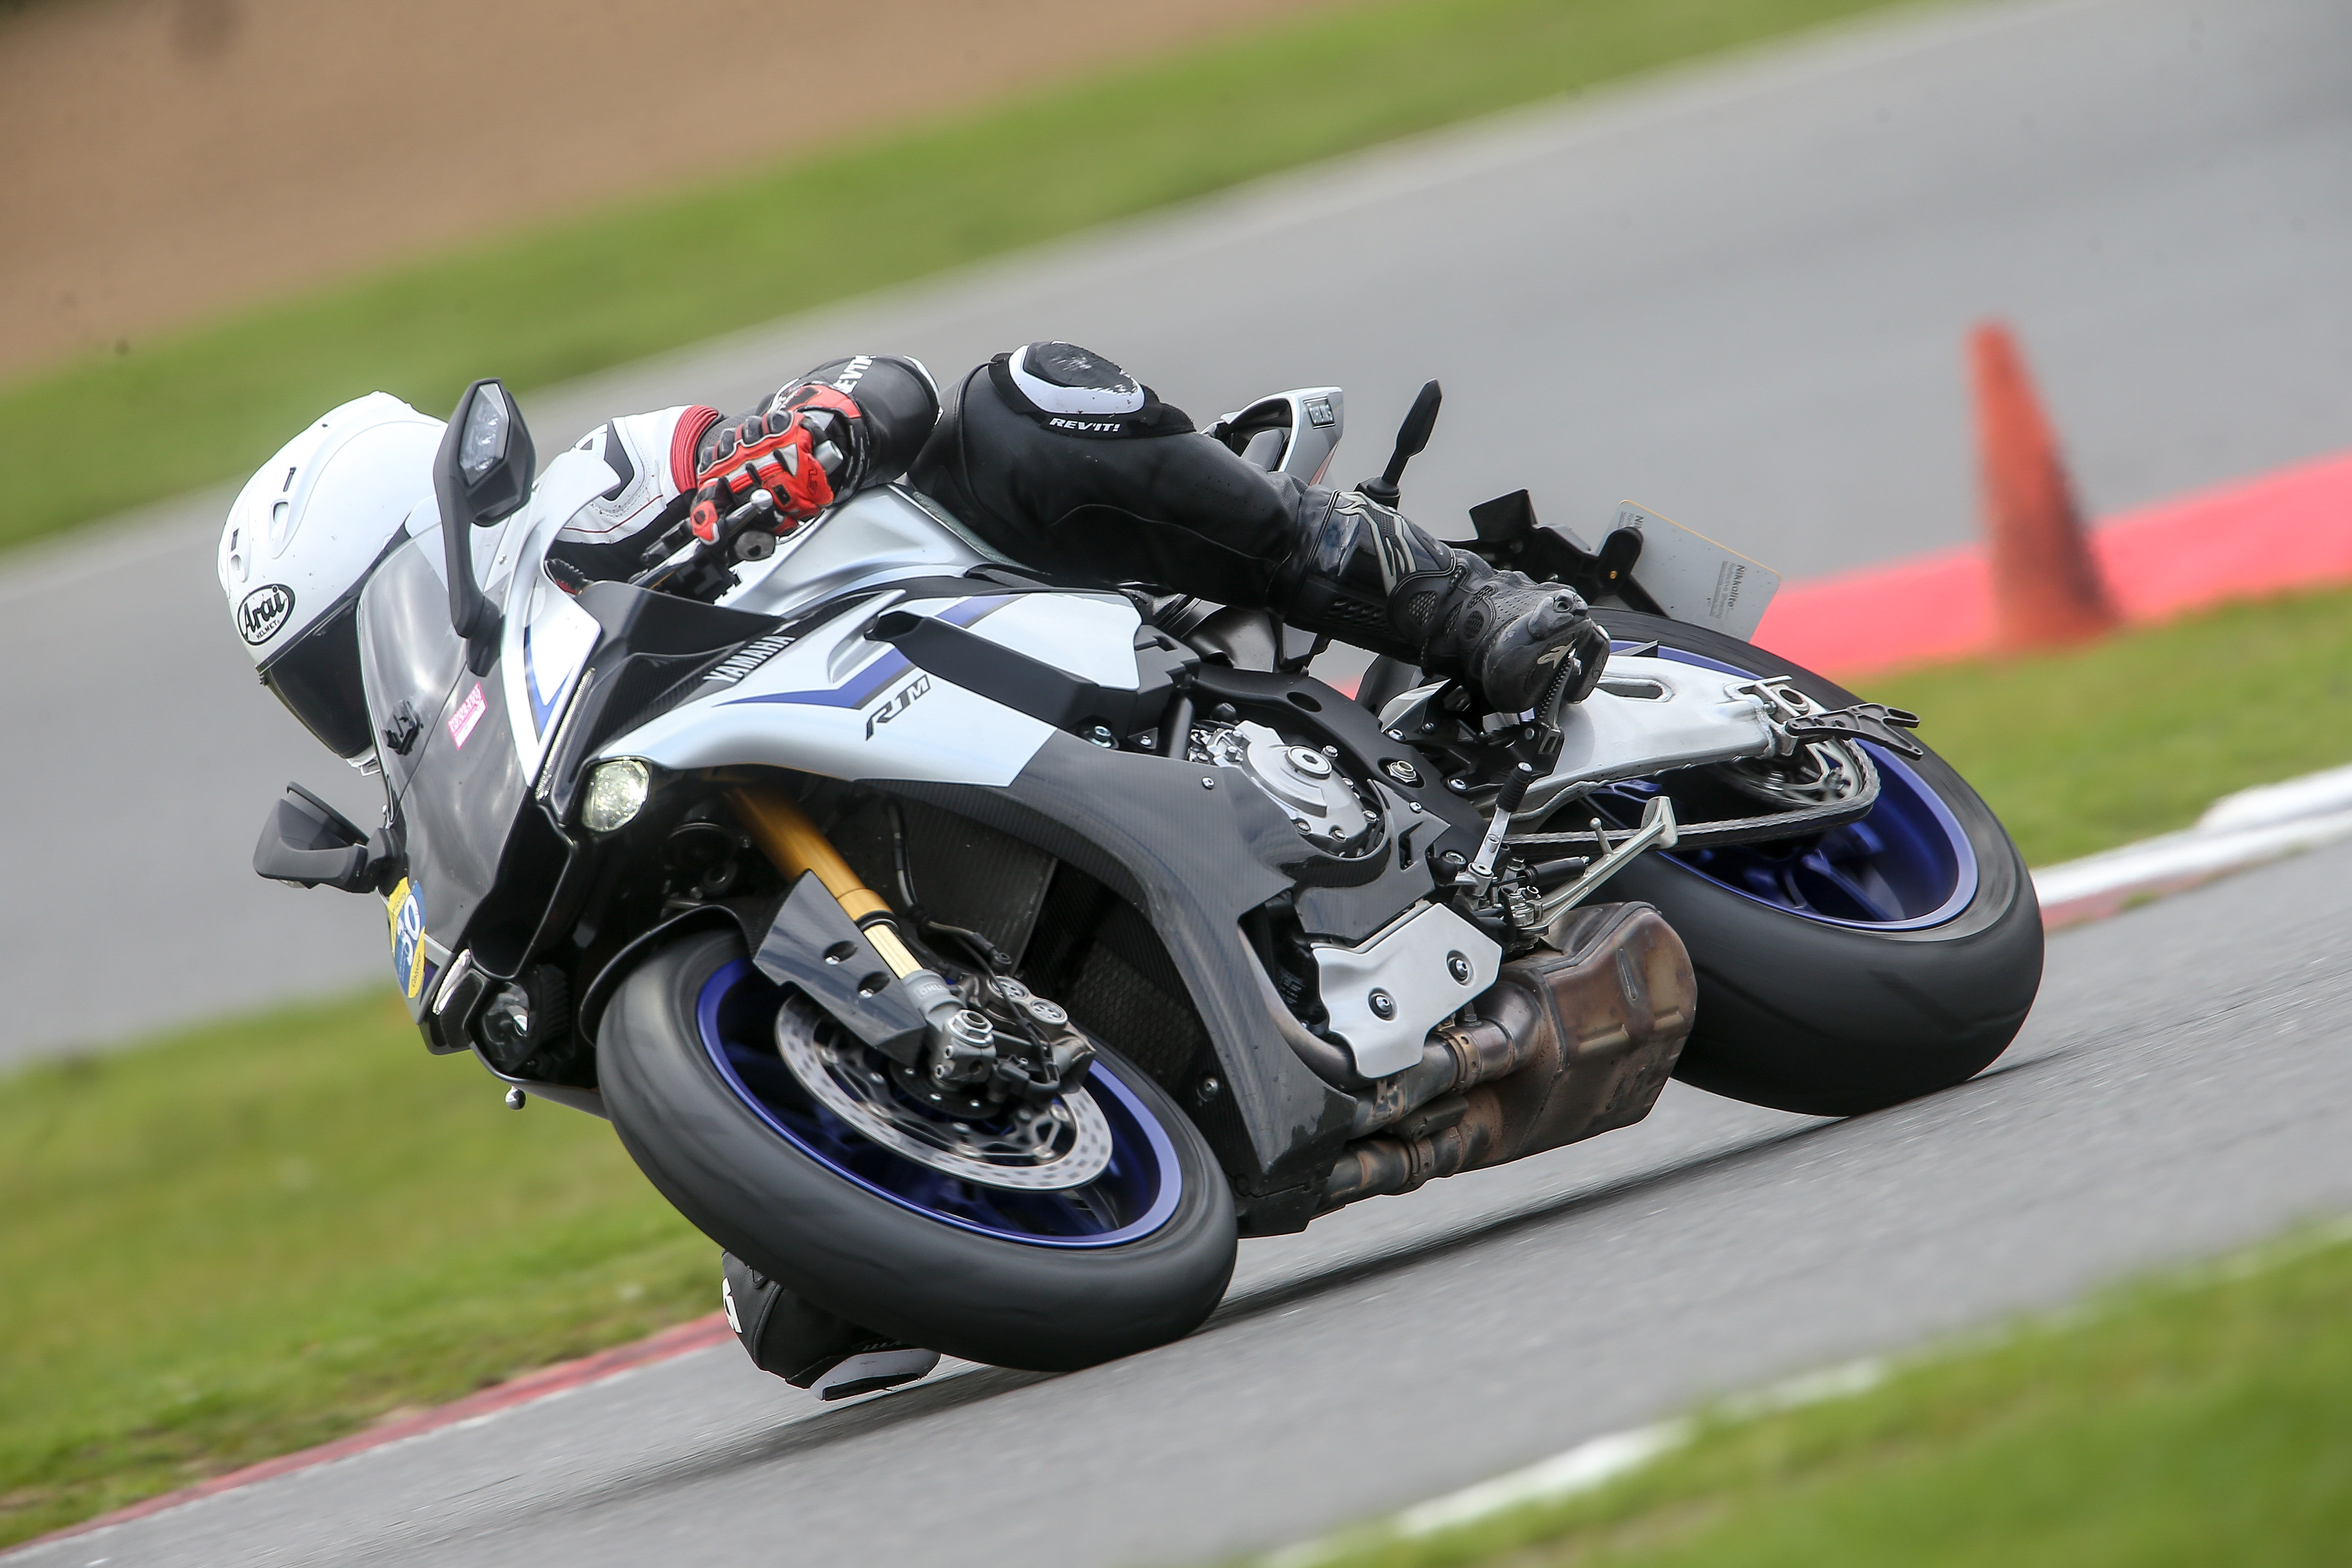 UK road and track test: Yamaha R1M review